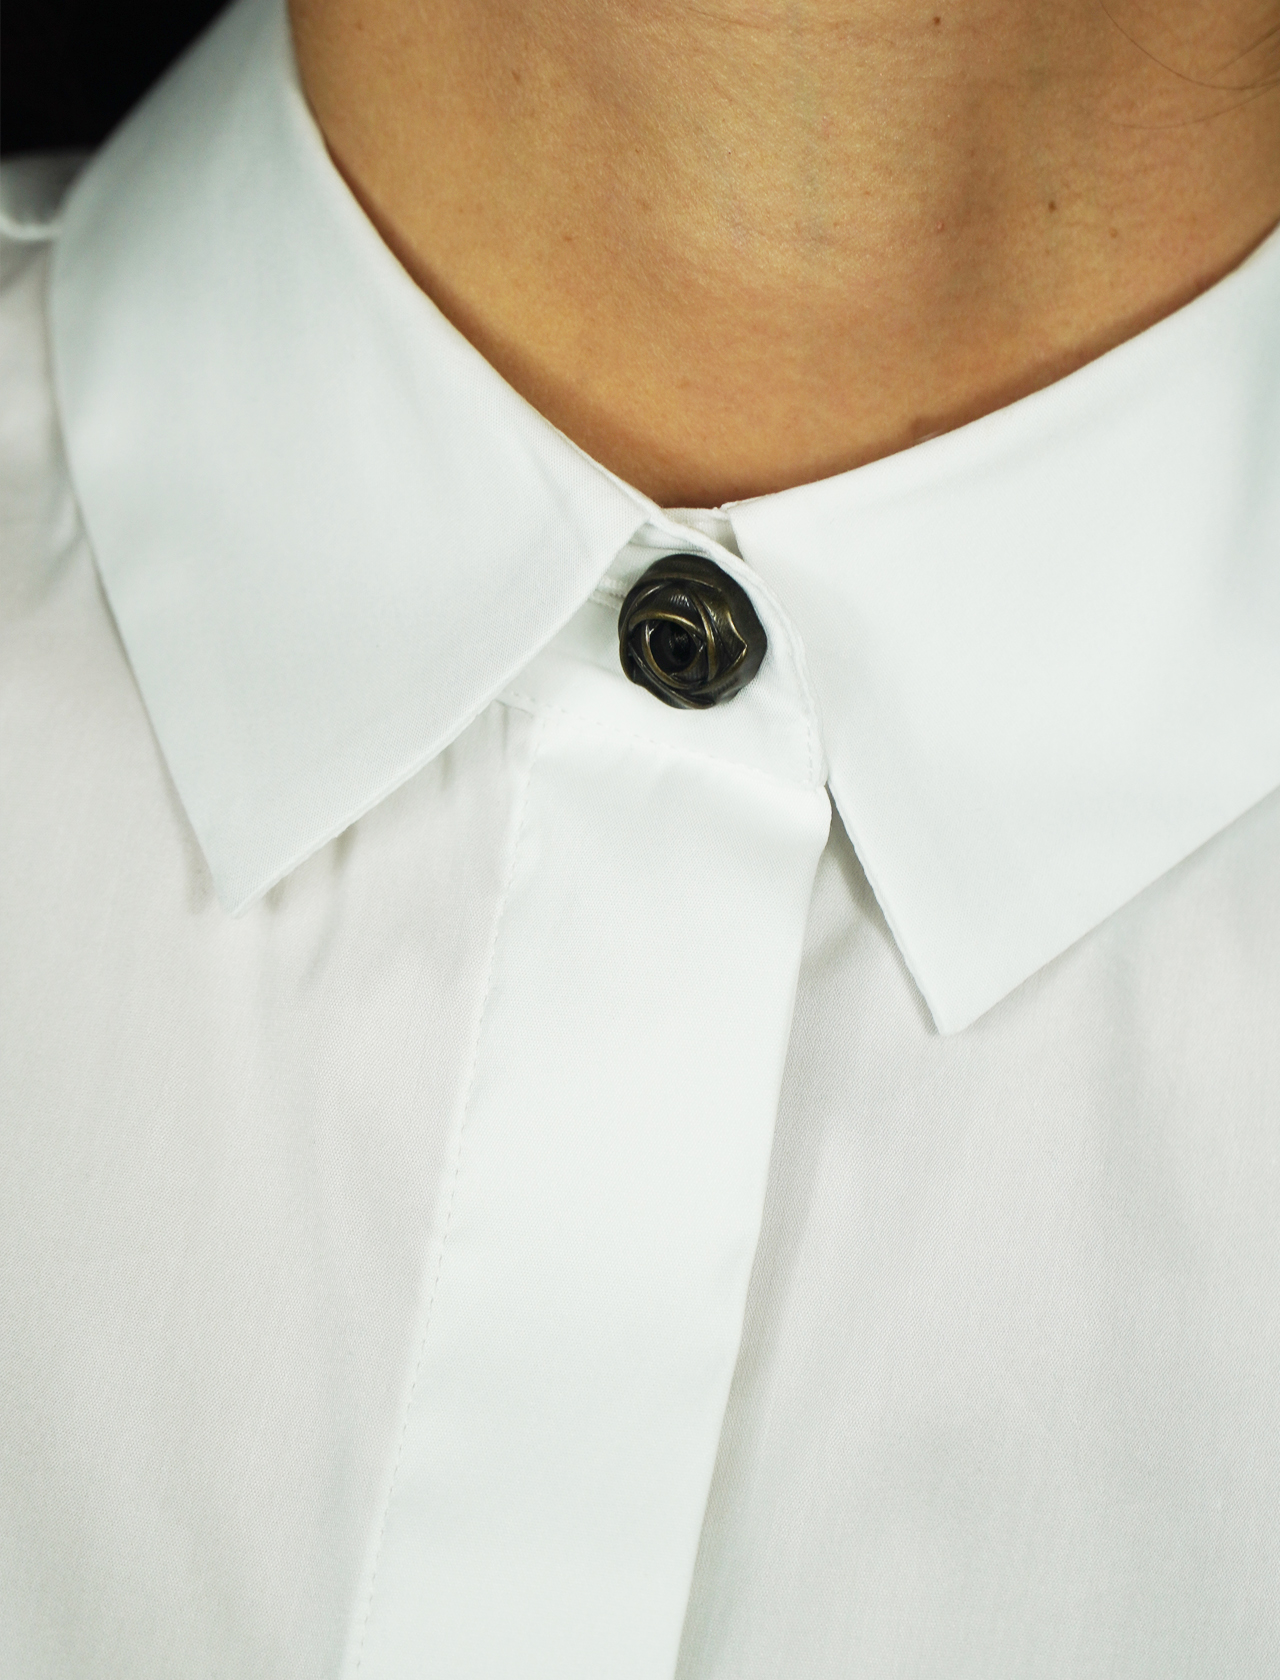 Women's Clothing Shirt in White Cotton Popeline Long sleeve with Jewel Button Maliparmi   Shirts and tops   JM44681010310000